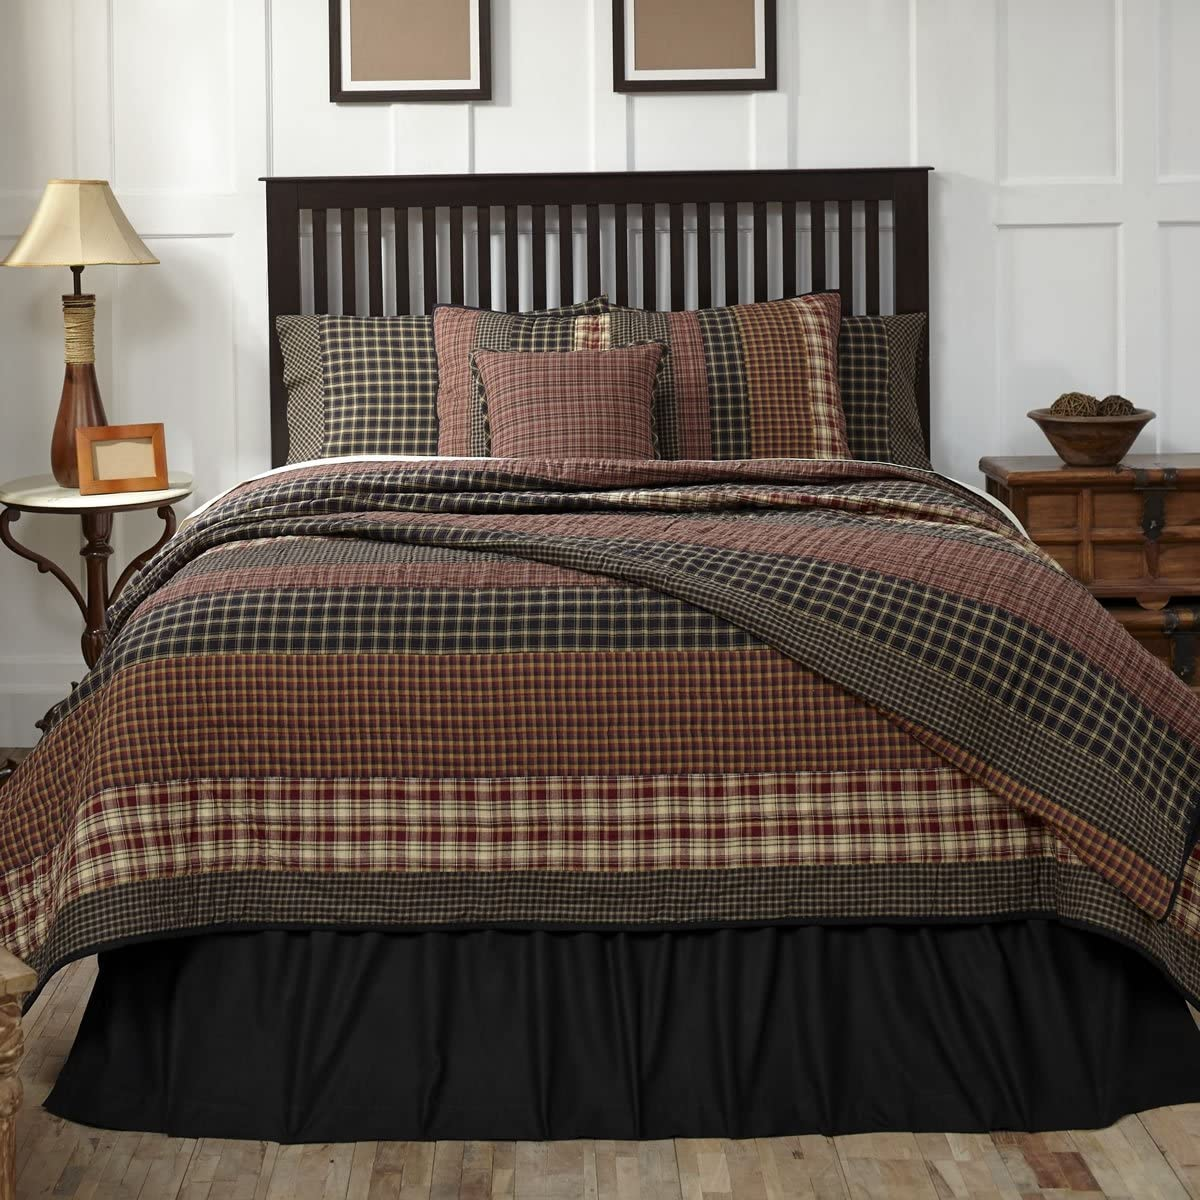 VHC Brands Rustic & Lodge Bedding-Beckham Quilt, Queen, Rust Red